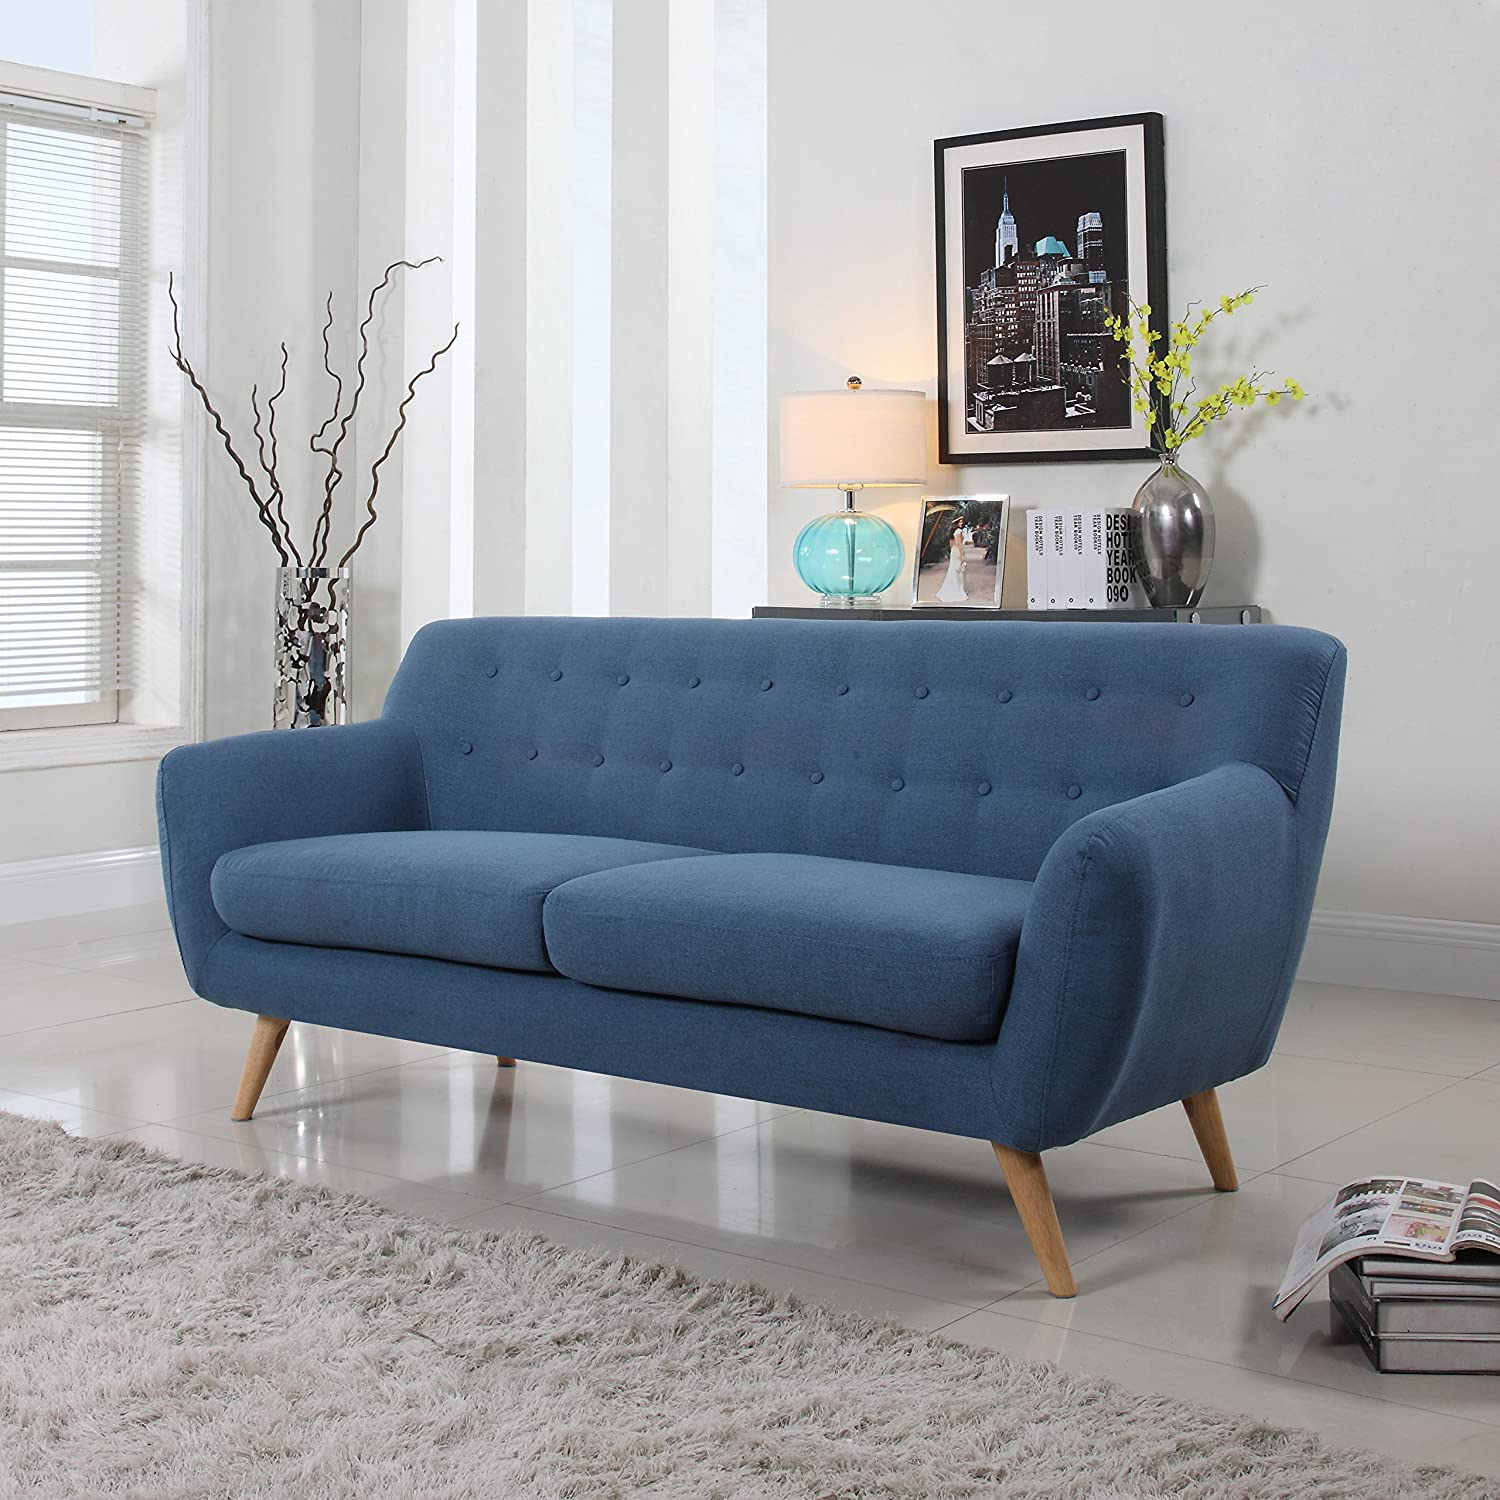 Awesome mid century modern sofa marmsweb marmsweb for Amazon mid century modern furniture